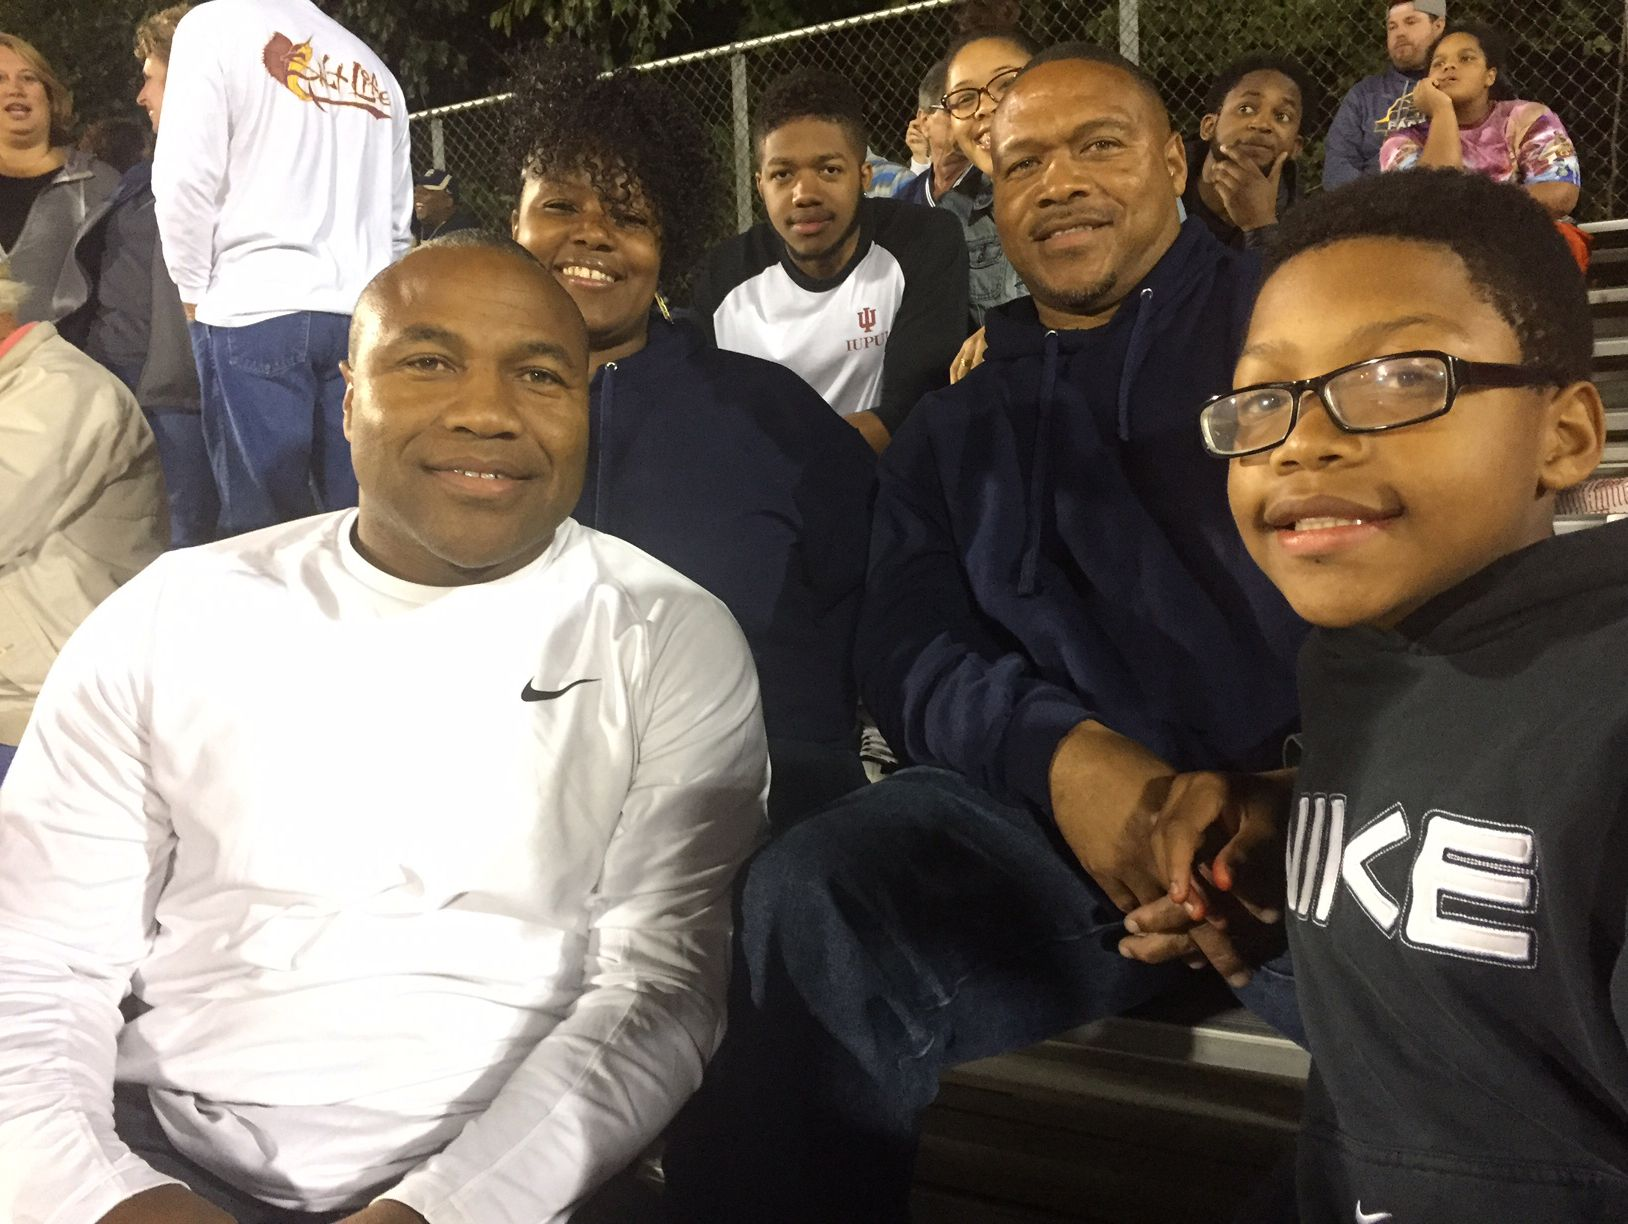 From left: Larry Tracy Jr., Laverna, Charles Turner V (young man top center), Jasmine (Larry Jr's daughter, North Central grad going for Ph.D in physical therapy at IUPUI), Tyrone Sr., his youngest son Javon.